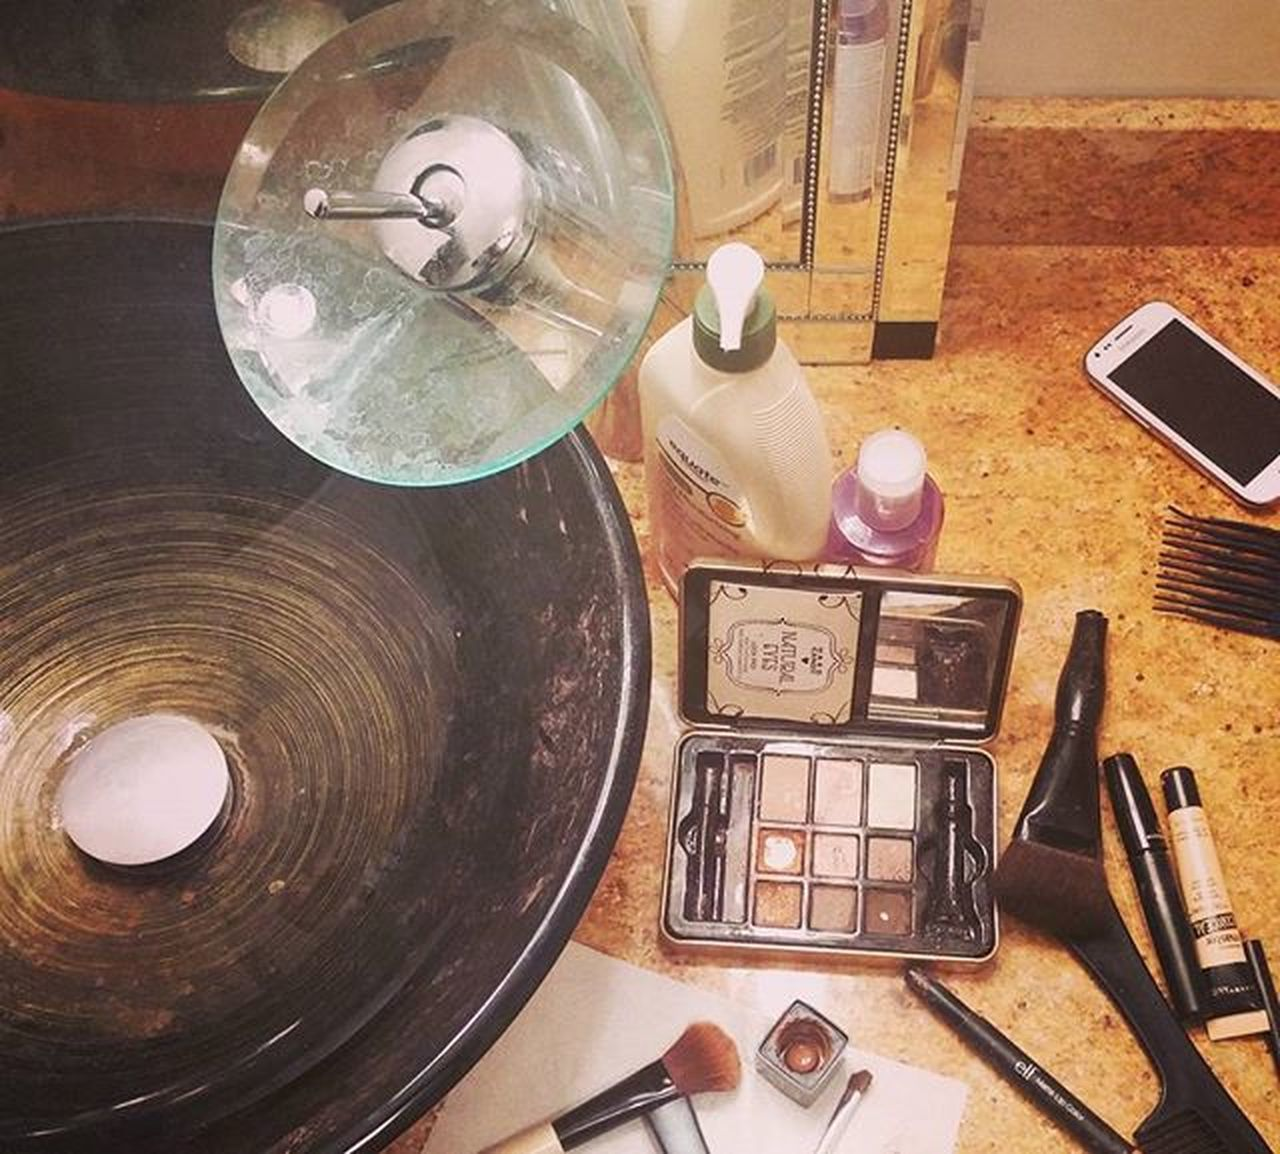 Gettingready Makeup for FreepsychicReadings FreeLiveChat with Me! MoniqueEmpath i'm putting my Soul on the floor for everyone who comes into the Free Session tonight visit link in bio to watch or participate and ask your most desired Questions Session Starts at 9pm eastern standard time ! Psychicmedium Clairvoyant Lightbody Lightenergy Pastpresentfuture Empath born Notoolsneeded see you at 9pm